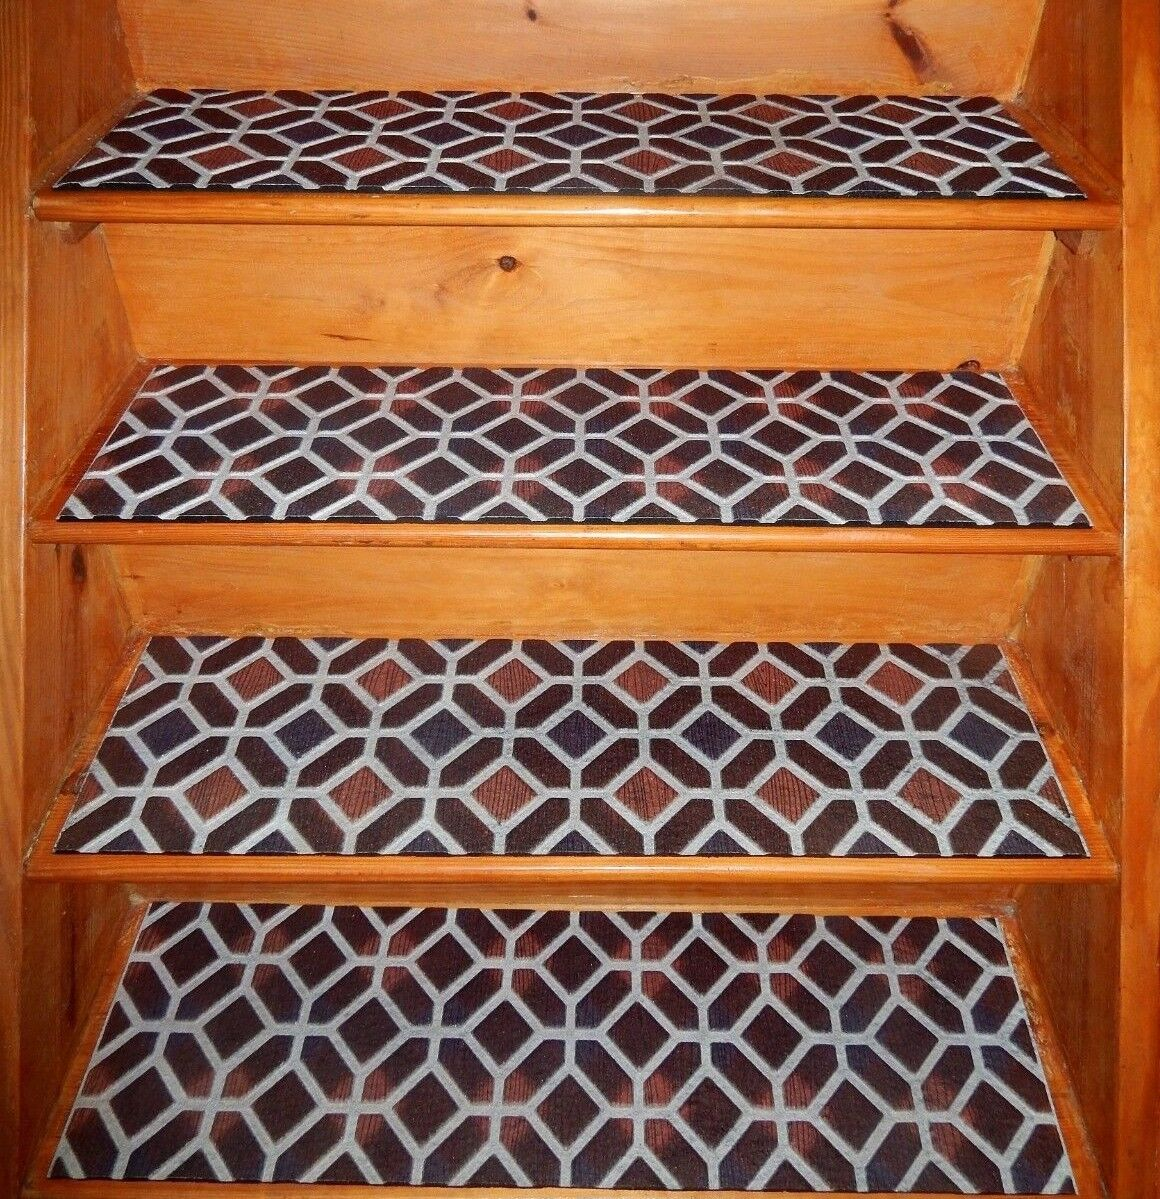 4 Step 10 X 36 100 Rubber Outdoor Stair Treads For Sale Online